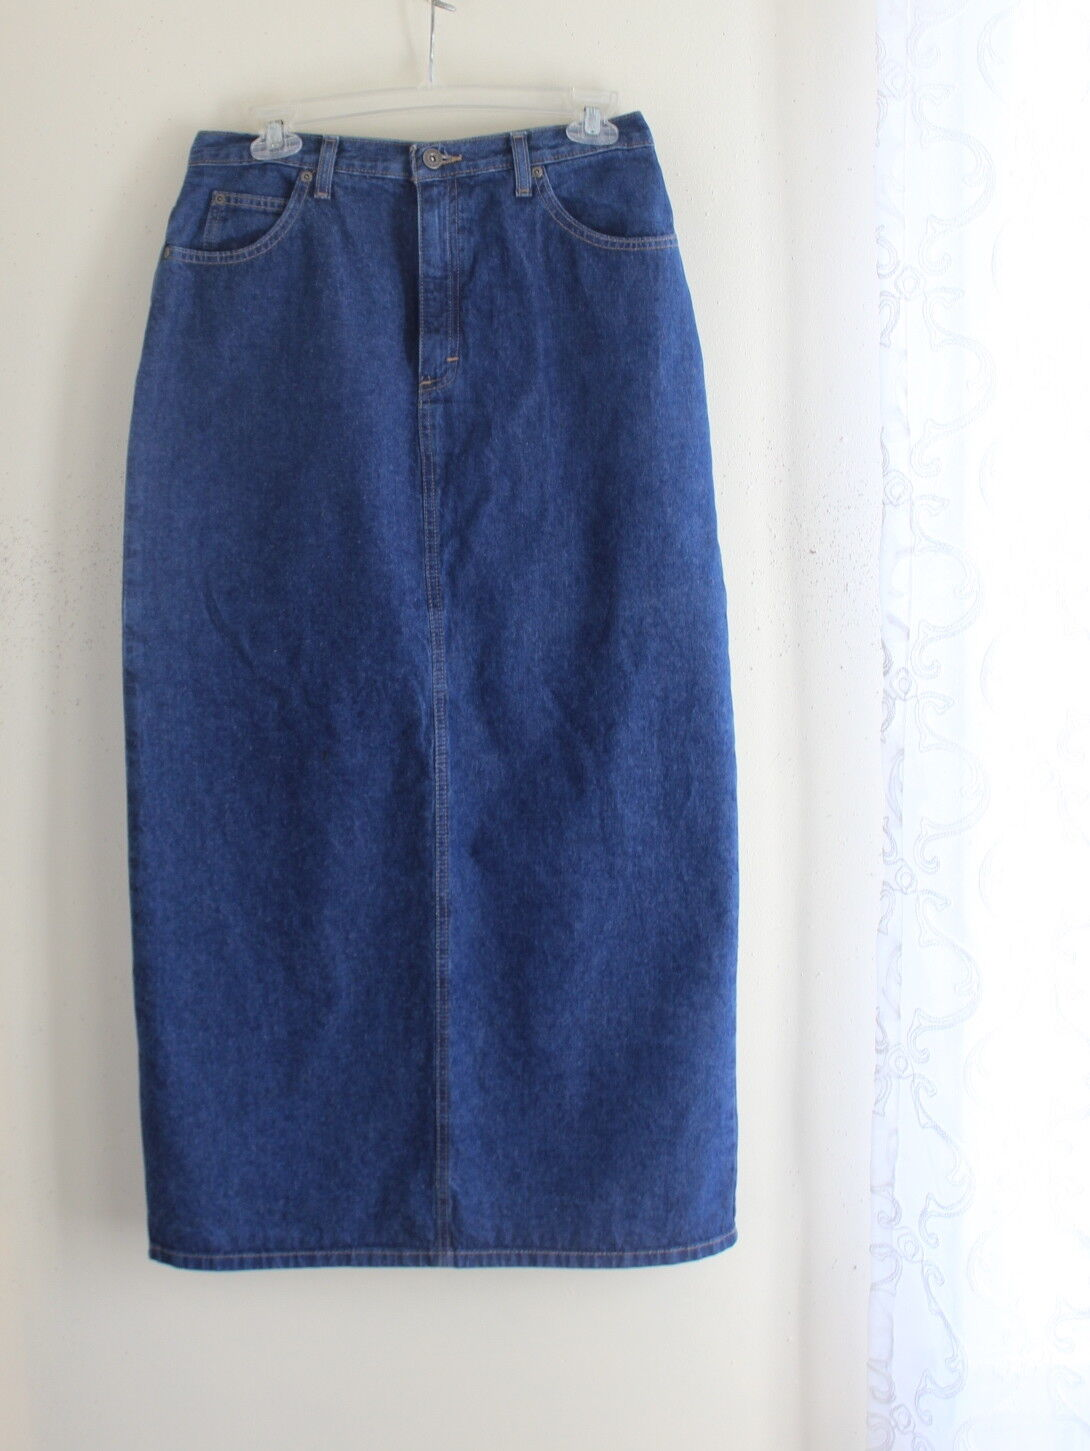 Liz Claiborne -Sz 10 Elegant Modest Denim Jean Straight Skirt - Mint Condition